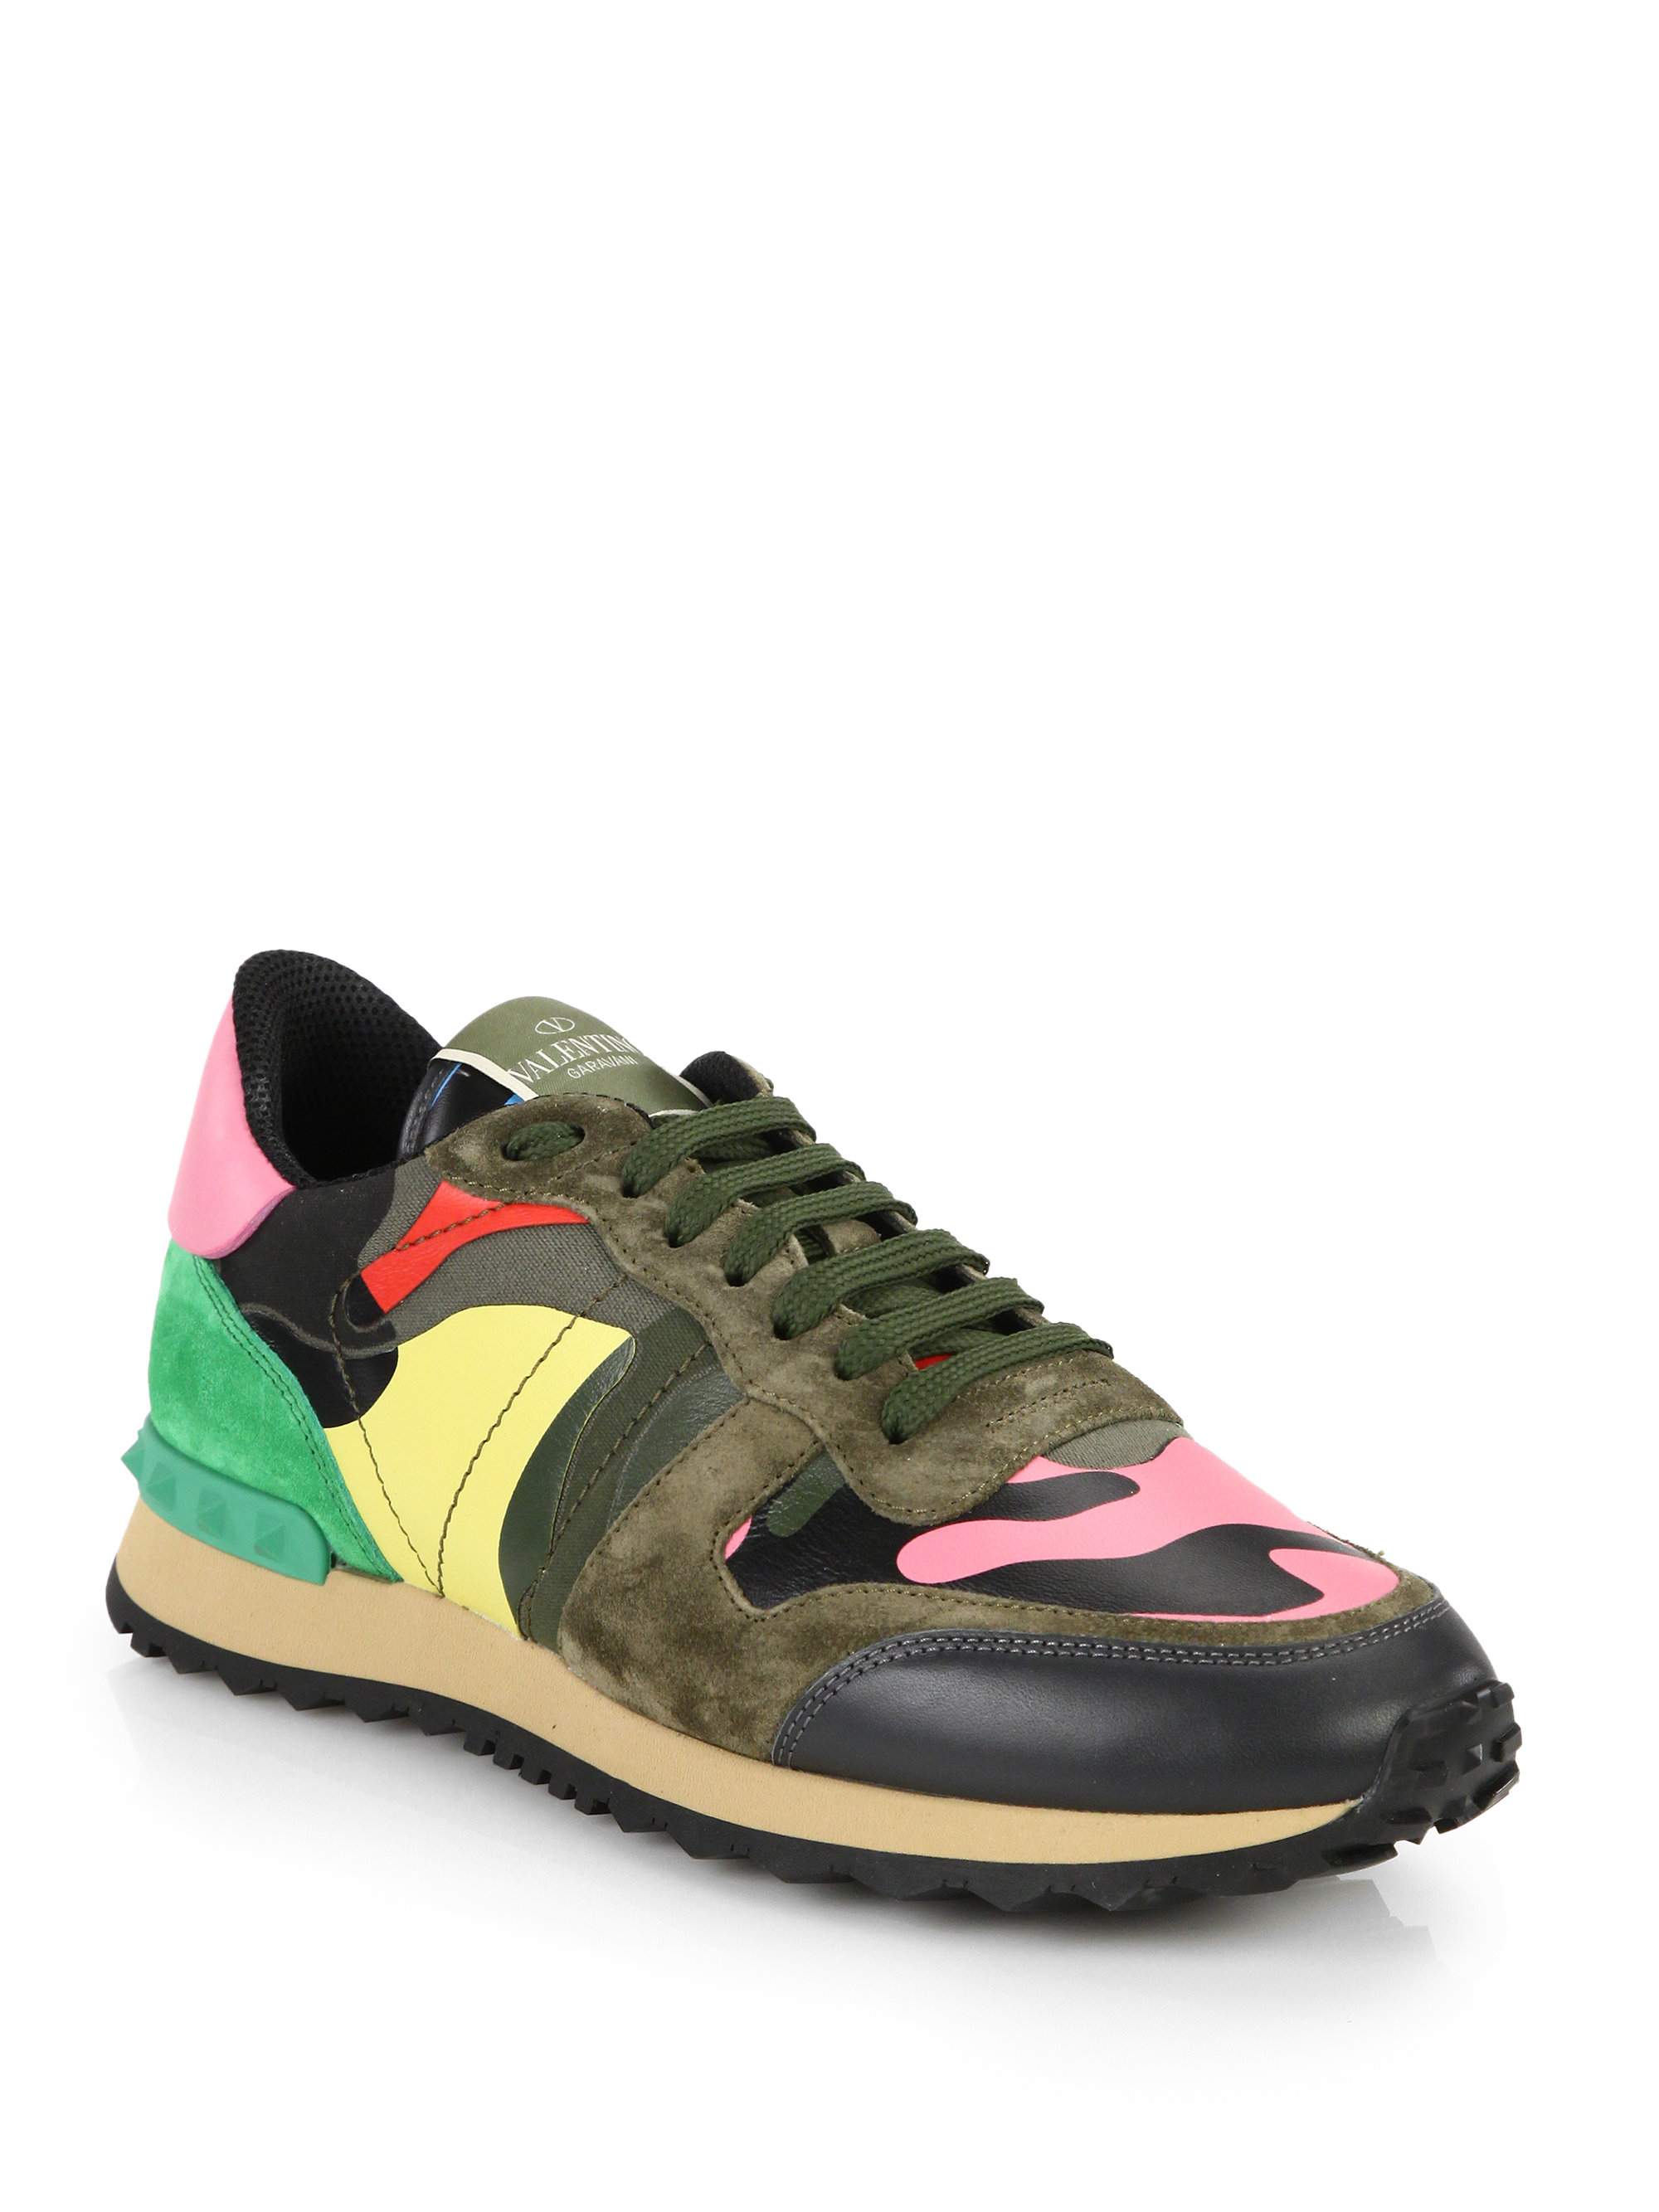 valentino mixed media camouflage sneakers for men lyst. Black Bedroom Furniture Sets. Home Design Ideas